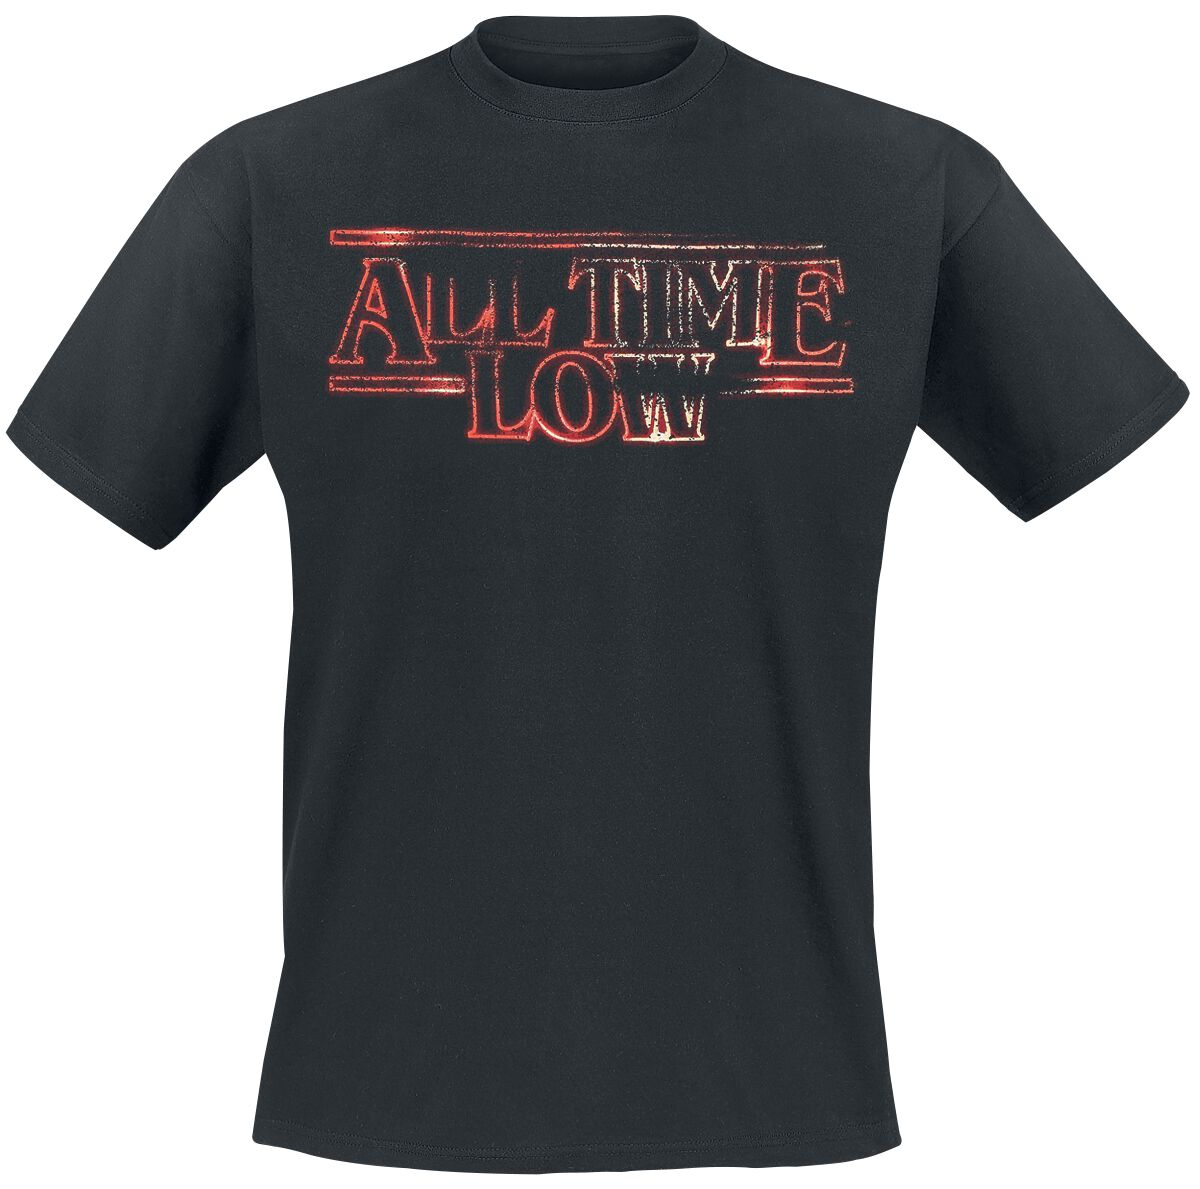 Image of All Time Low Glow T-Shirt schwarz